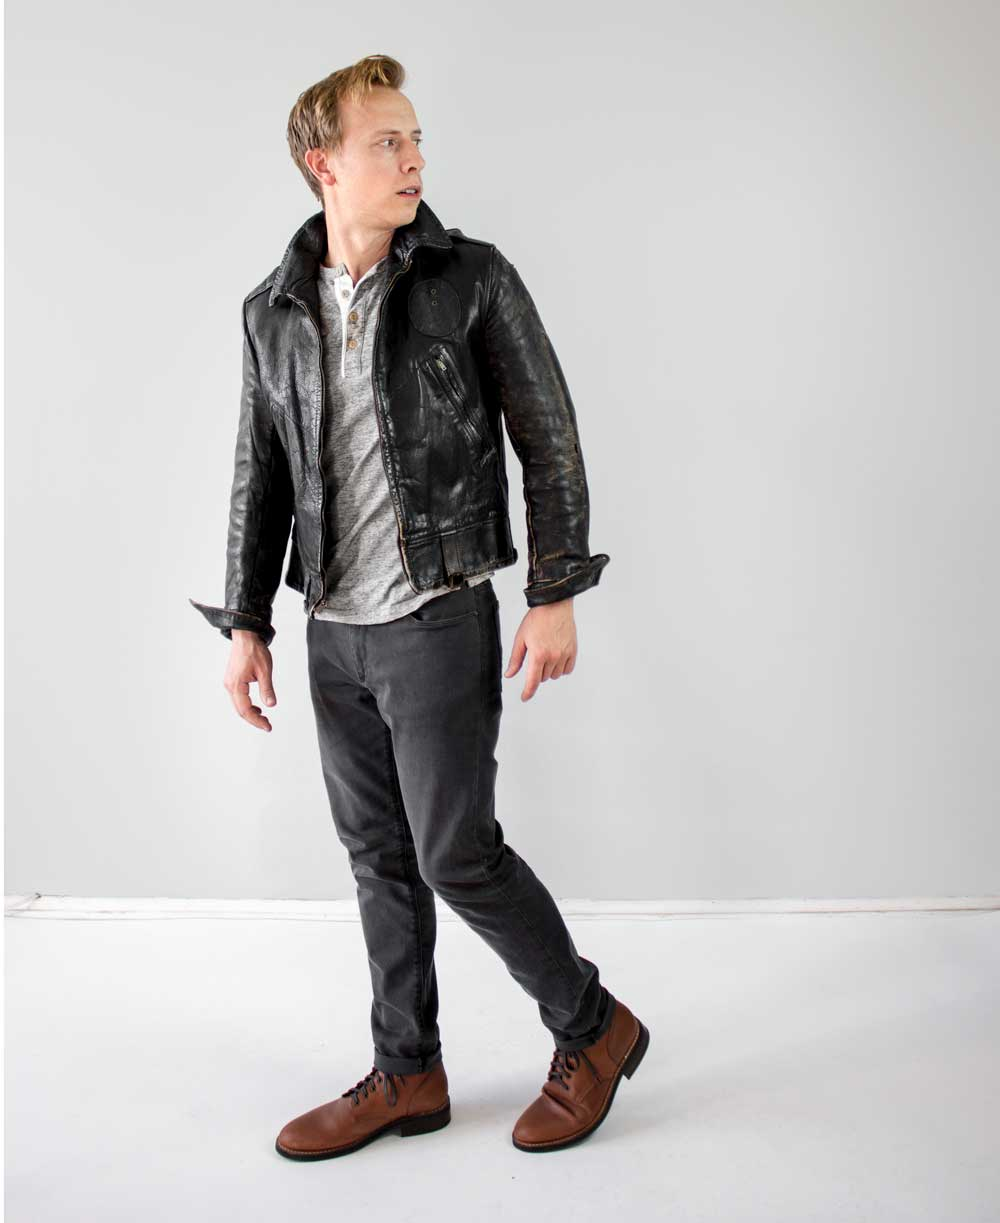 men casual outfit leather biker jacket henley gray jeans brown boots